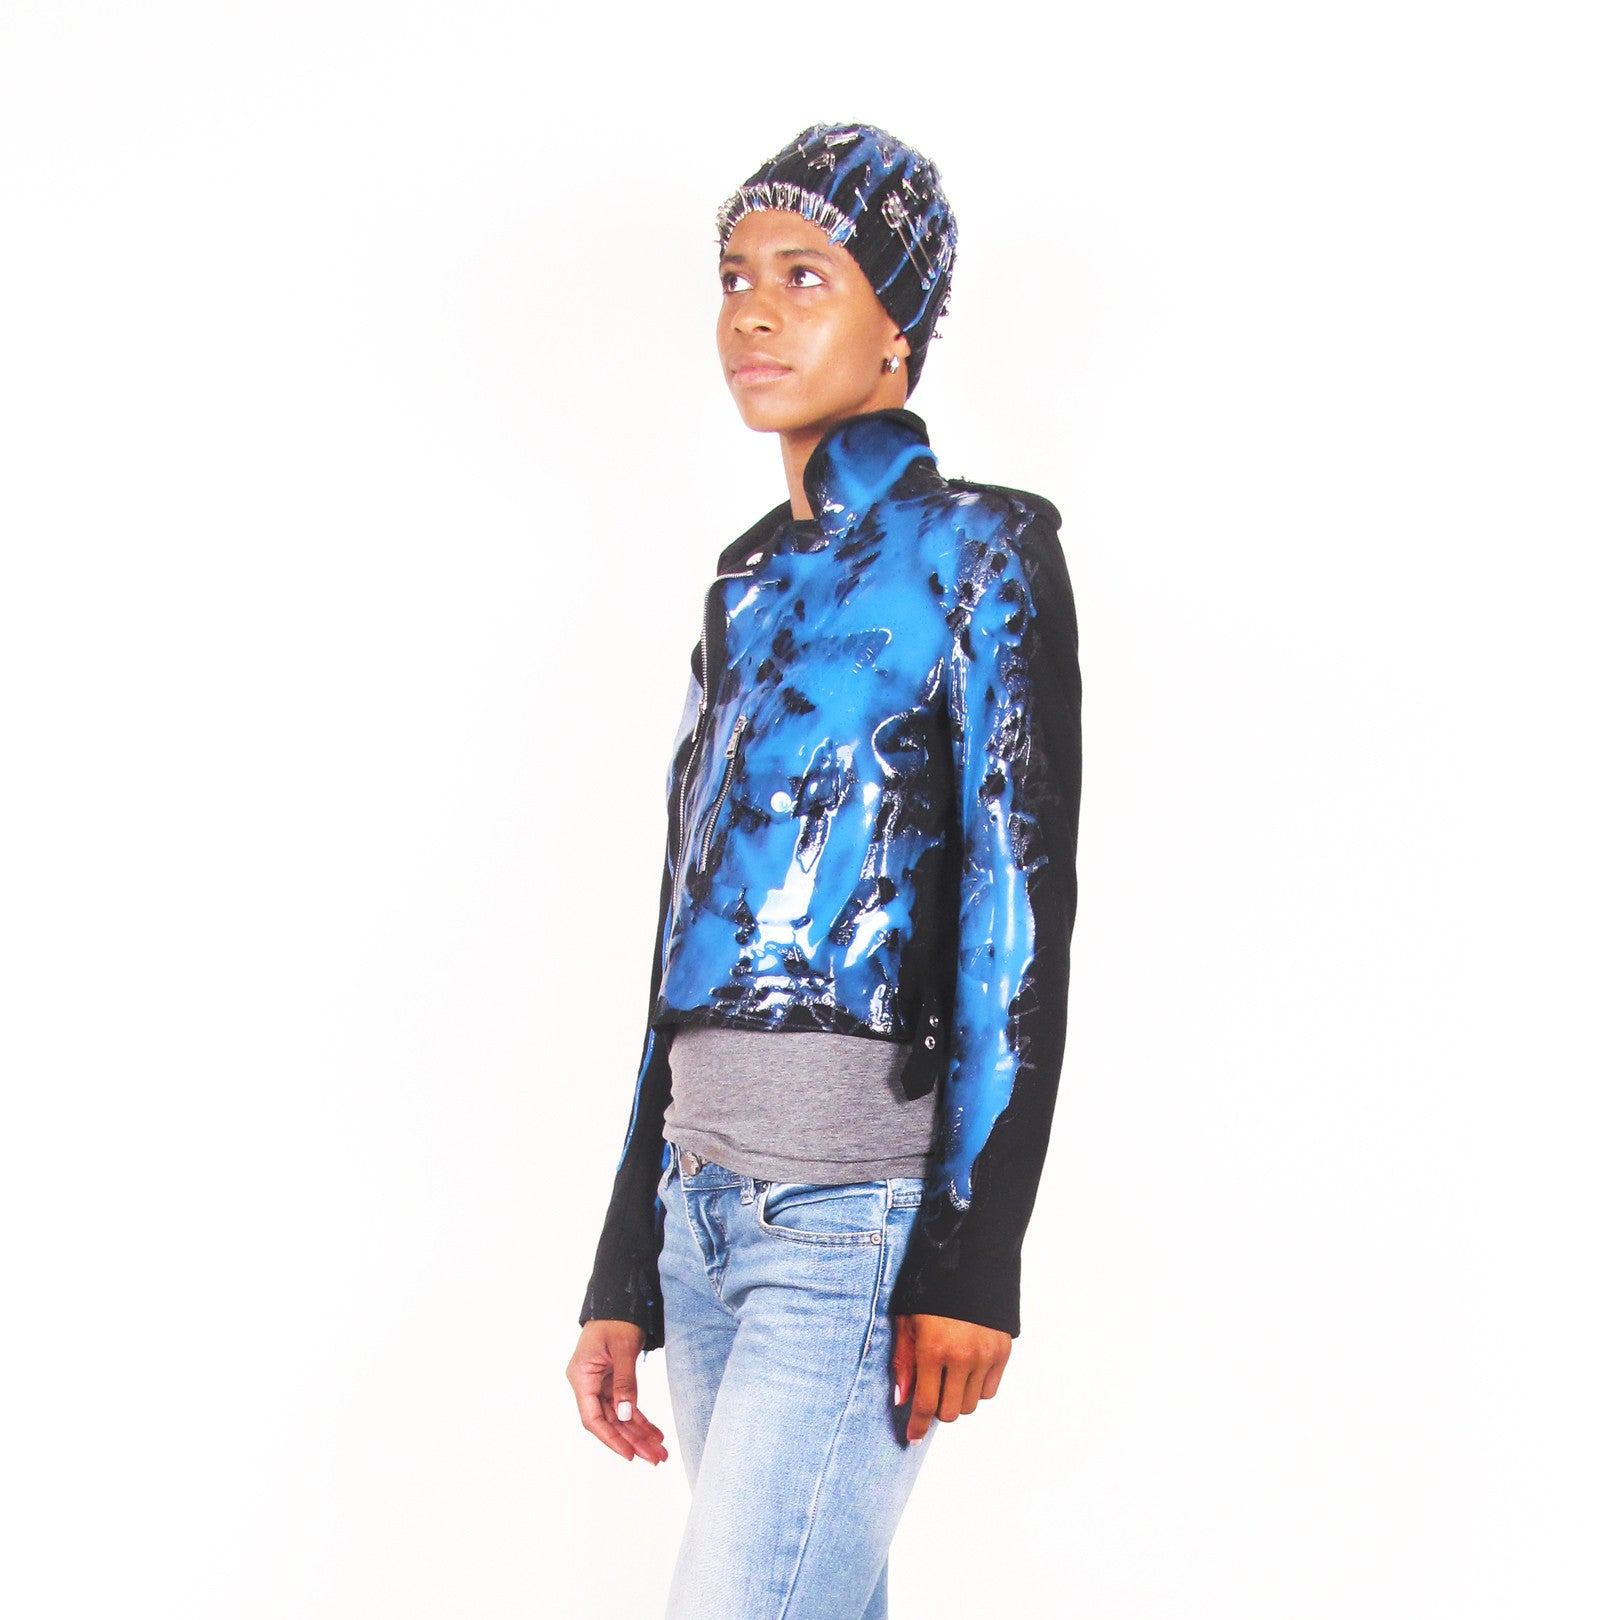 SSIK ONE OF A KIND Silicon Glitter Beaded Drip Jacket - AVAILABLE FOR  IMMEDIATE DELIVERY SIZE S